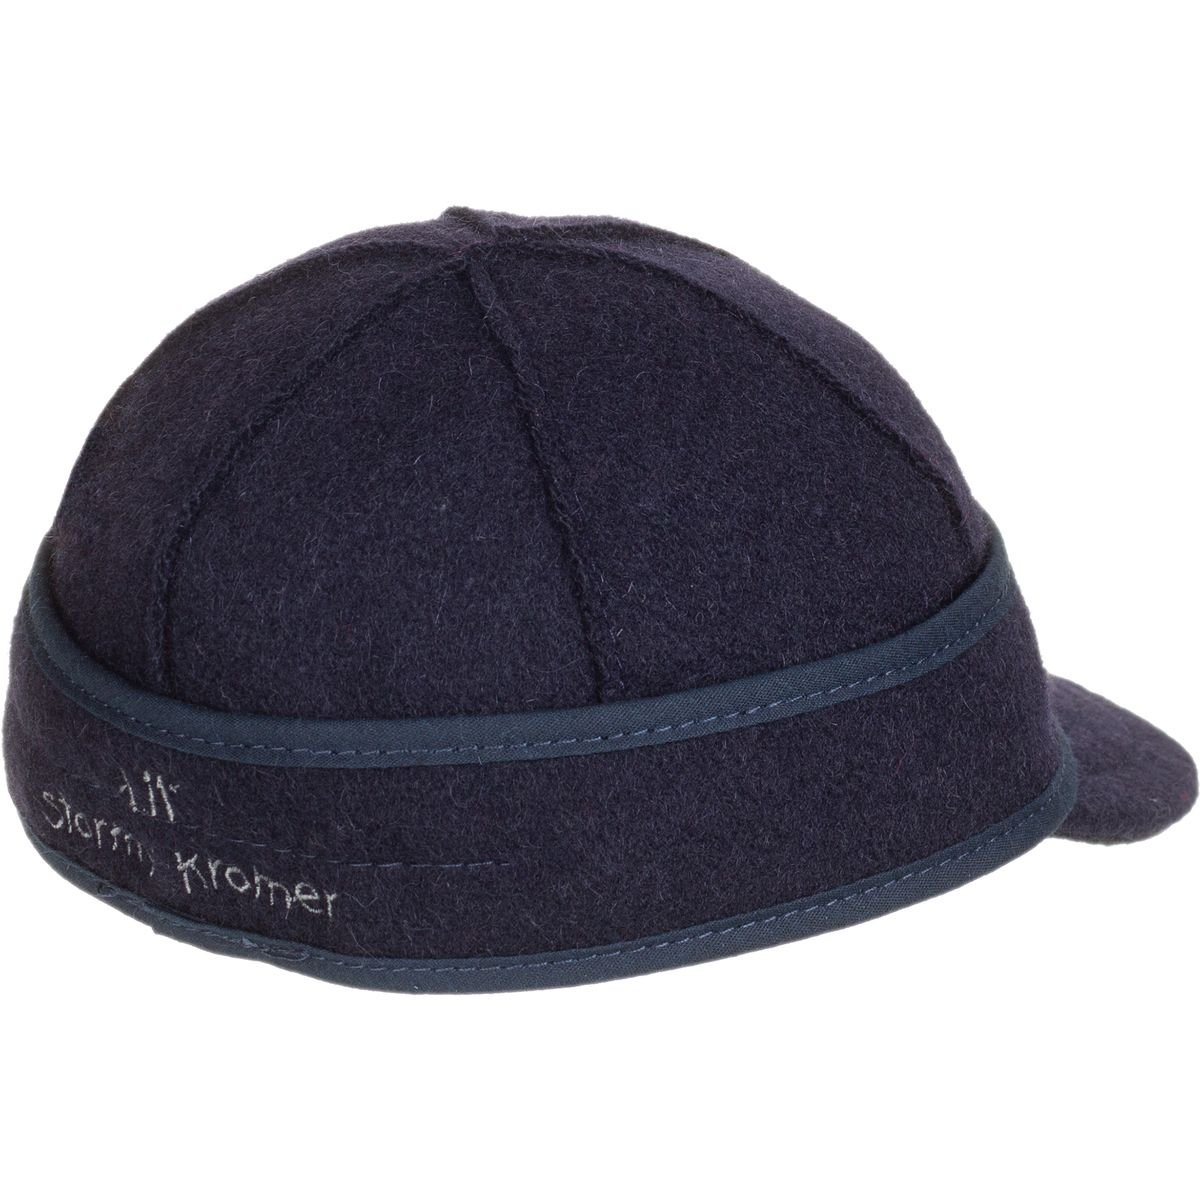 103561a6 Amazon.com: Stormy Kromer Kid's Lil' Kromer Cap: Clothing